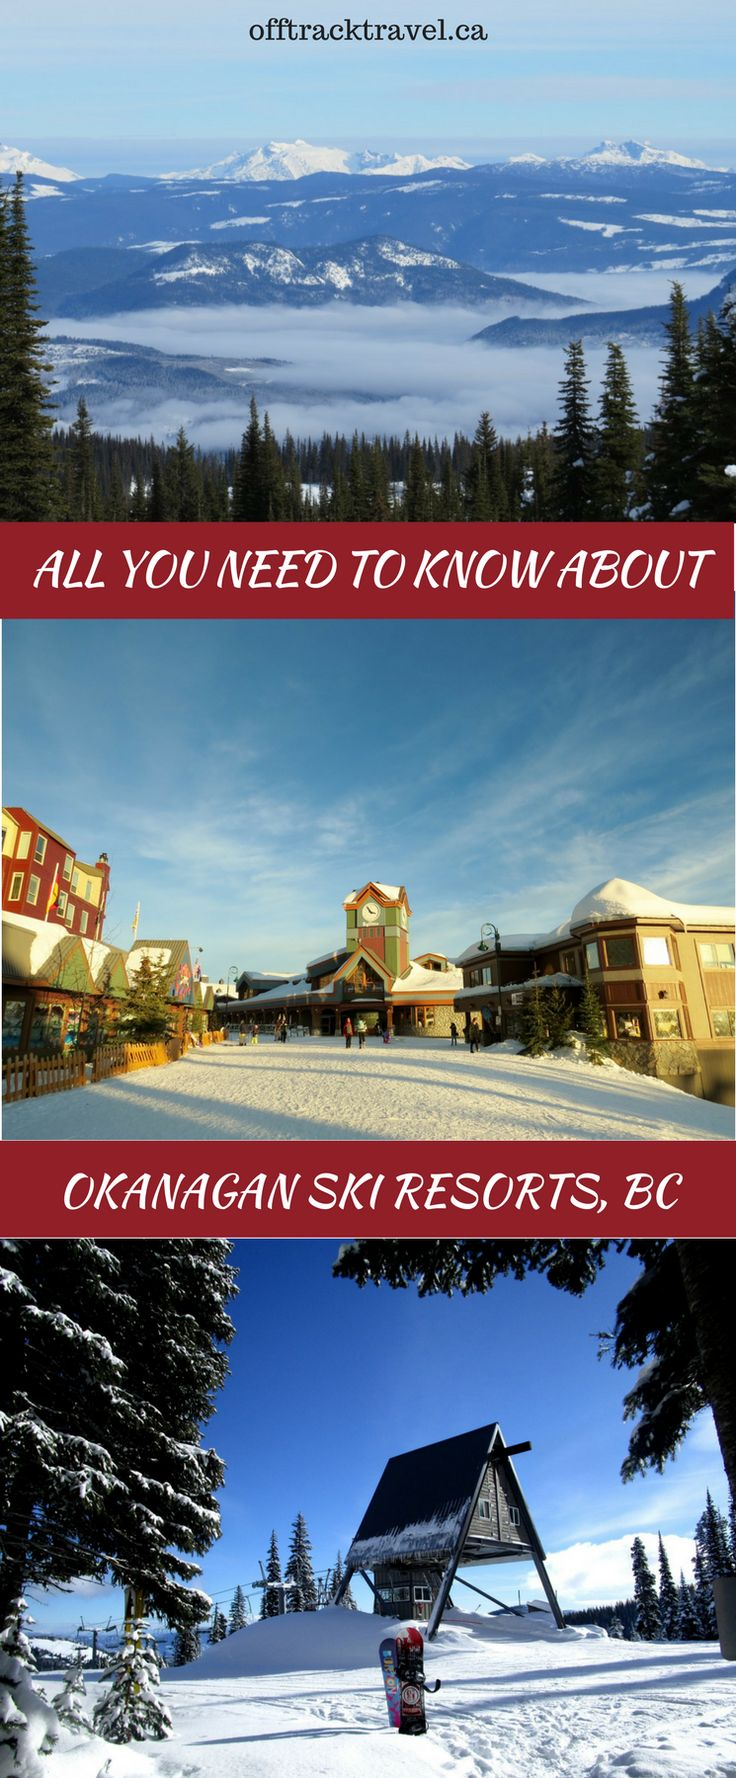 Sun Peaks, Silver Star, Big White, Mt Baldy and Apex Mountain - 5 fantastic resorts with the legendary Okanagan champagne powder. Here's everything you need to know for your next Okanagan ski trip